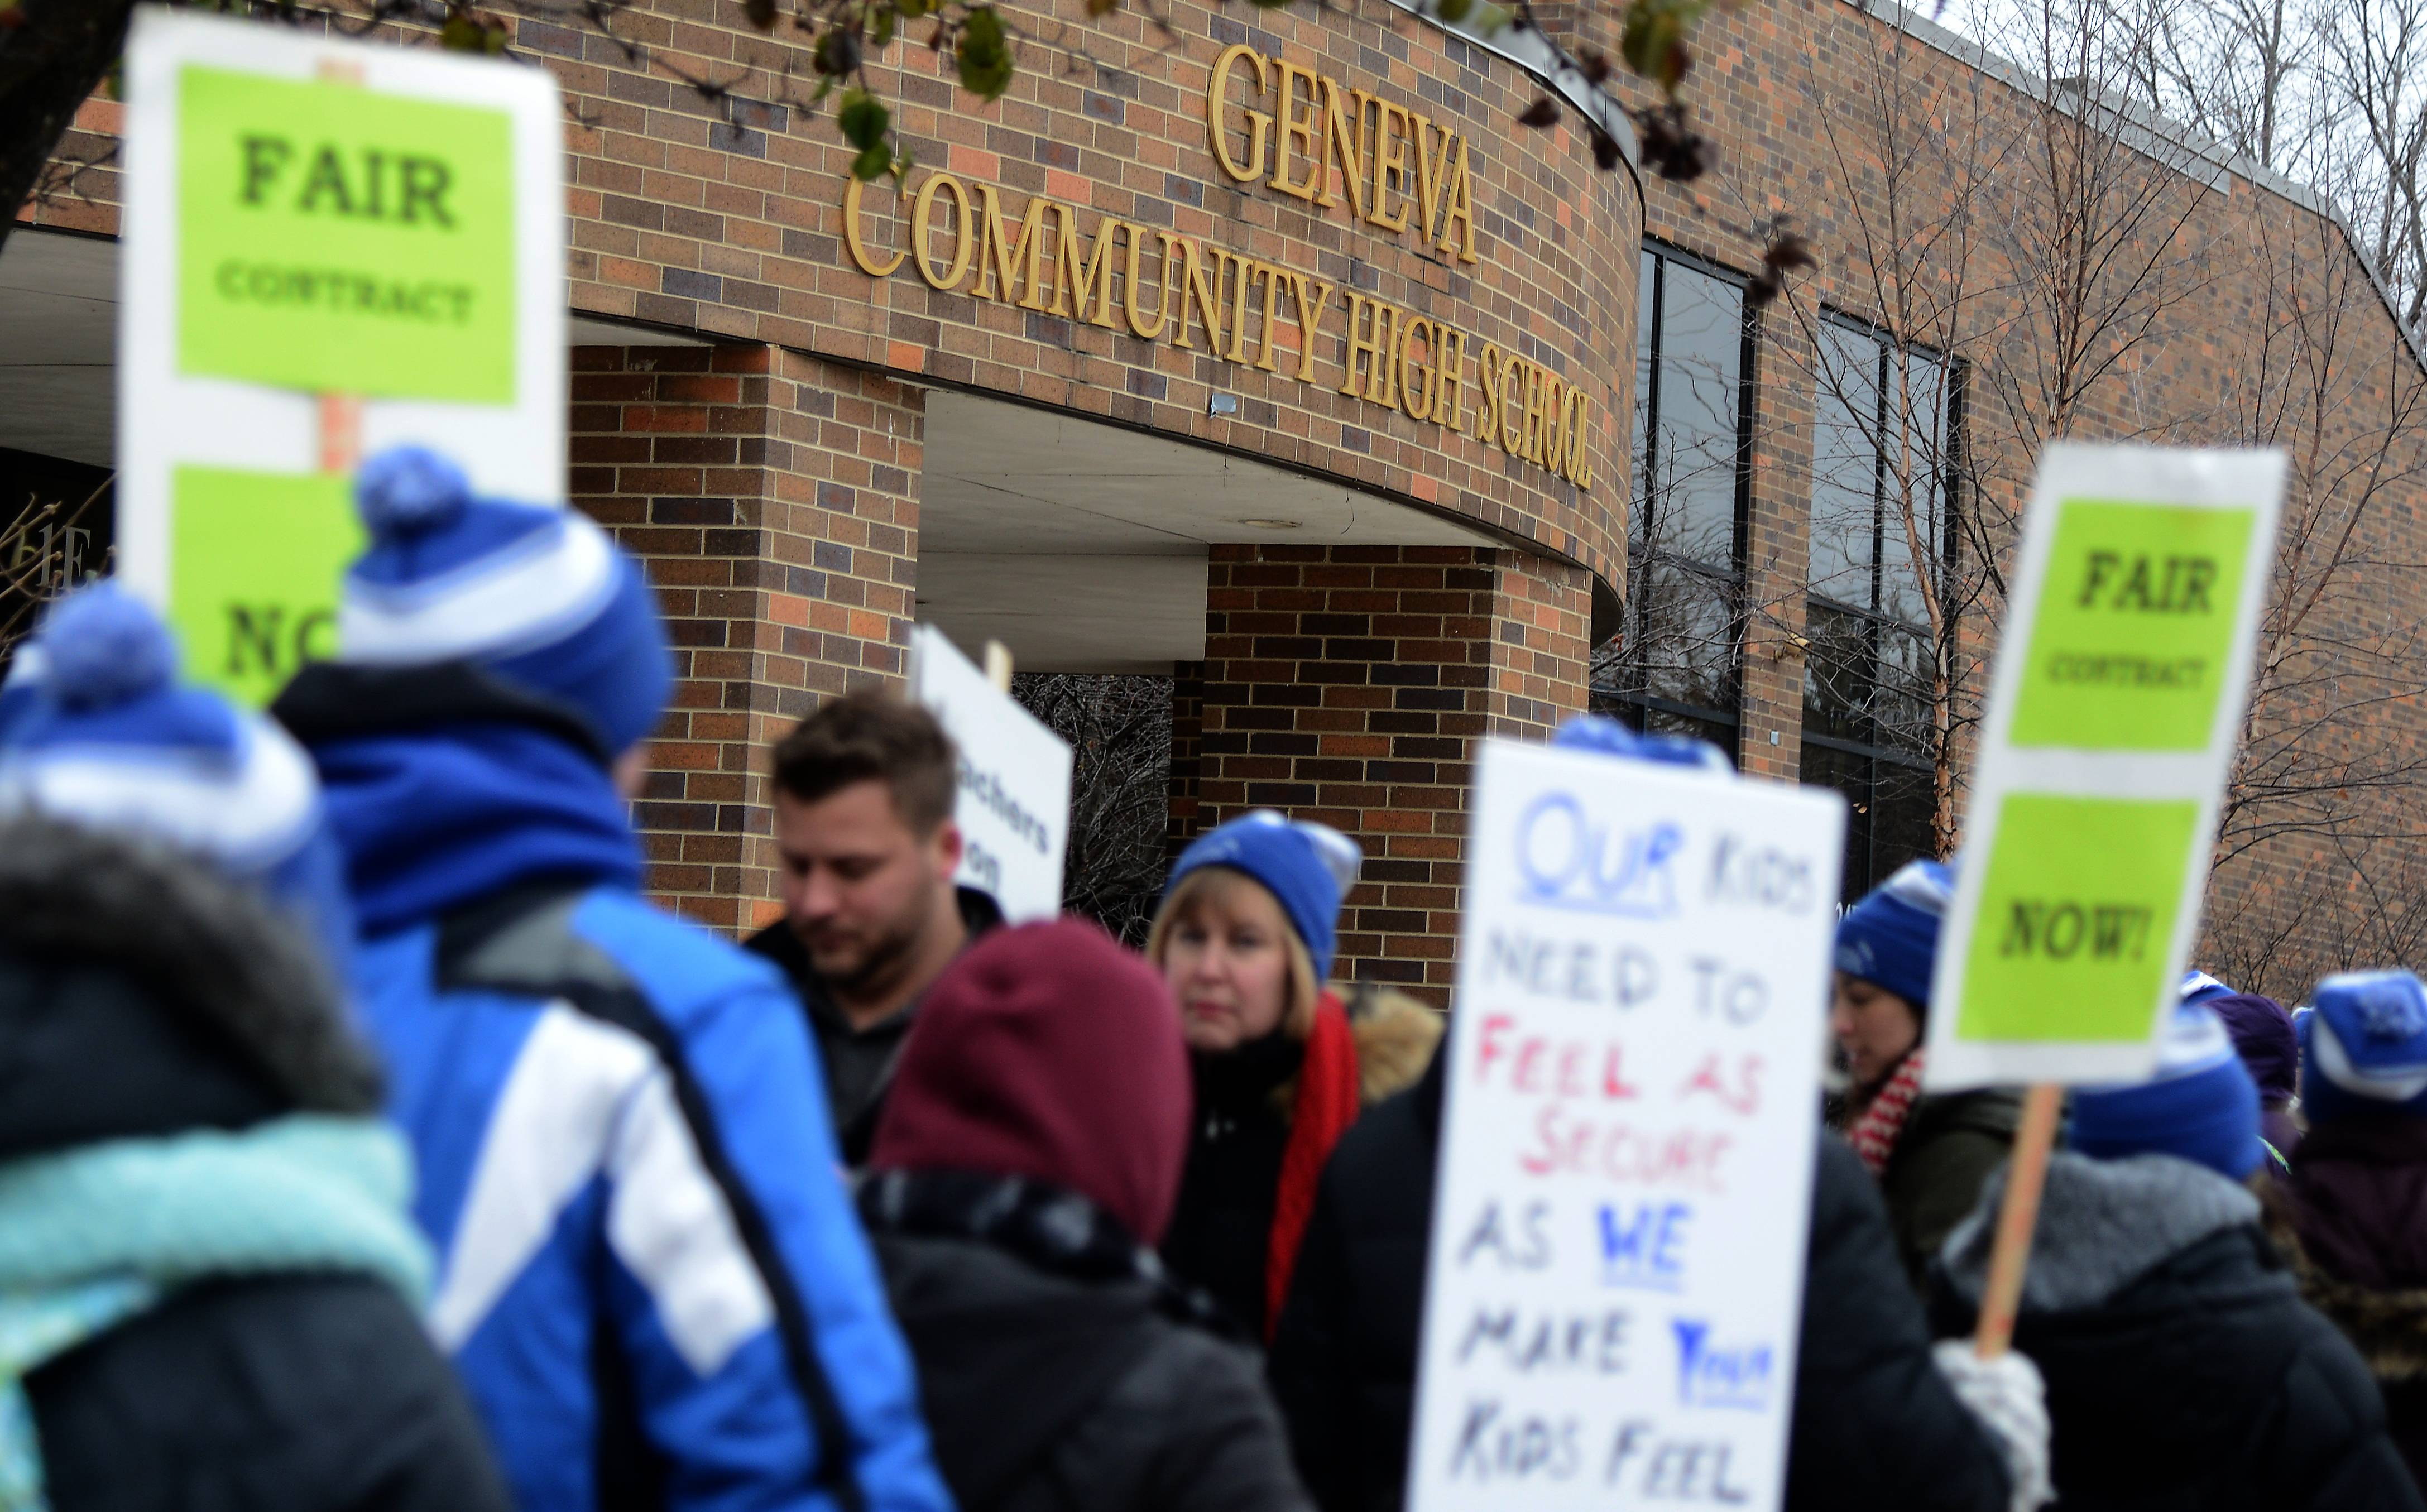 Contract talks are scheduled to resume Thursday in Geneva District 304.